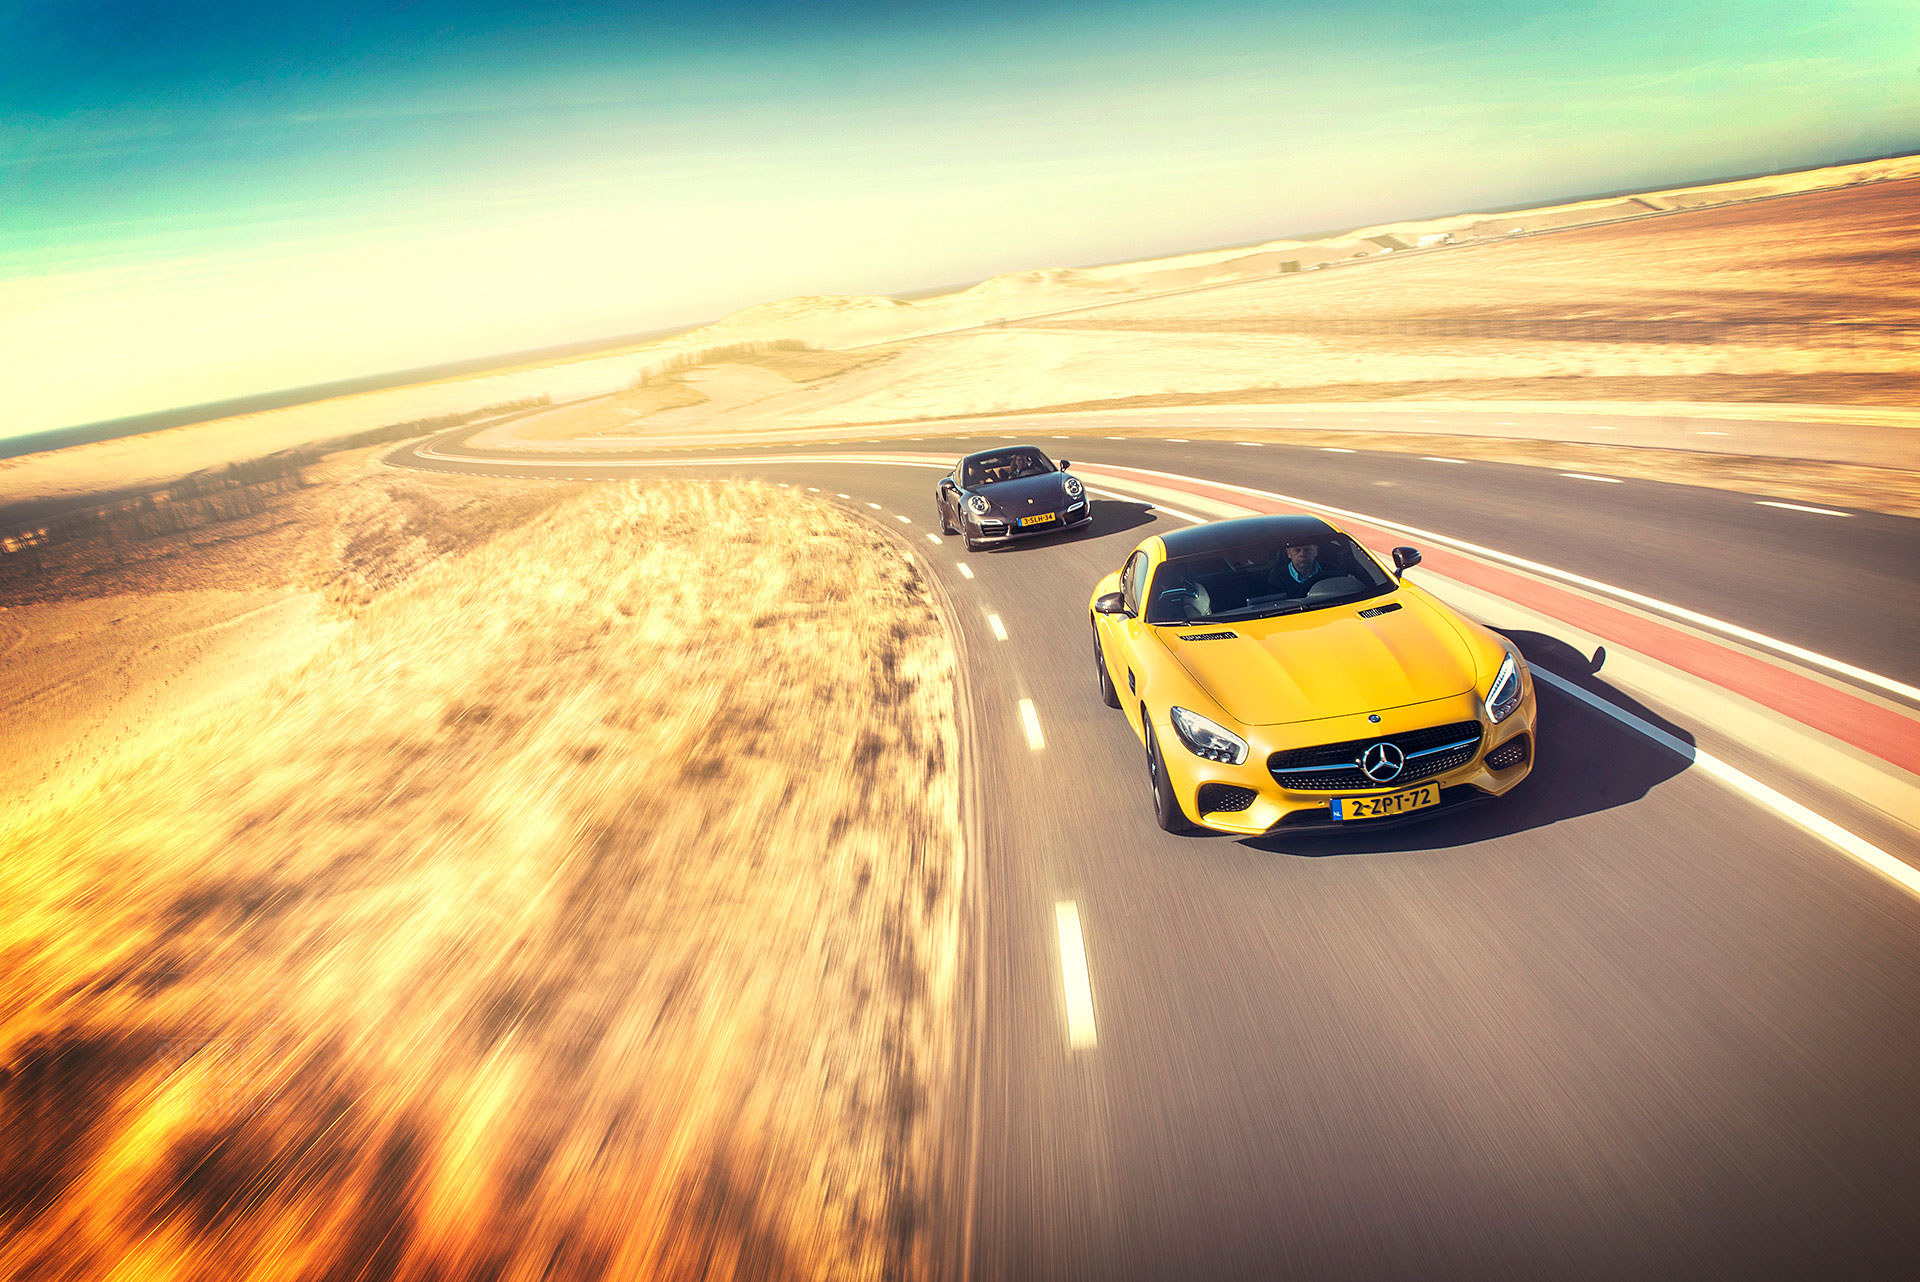 Mercedes-AMG-GT-Porsche-911-turbo-006